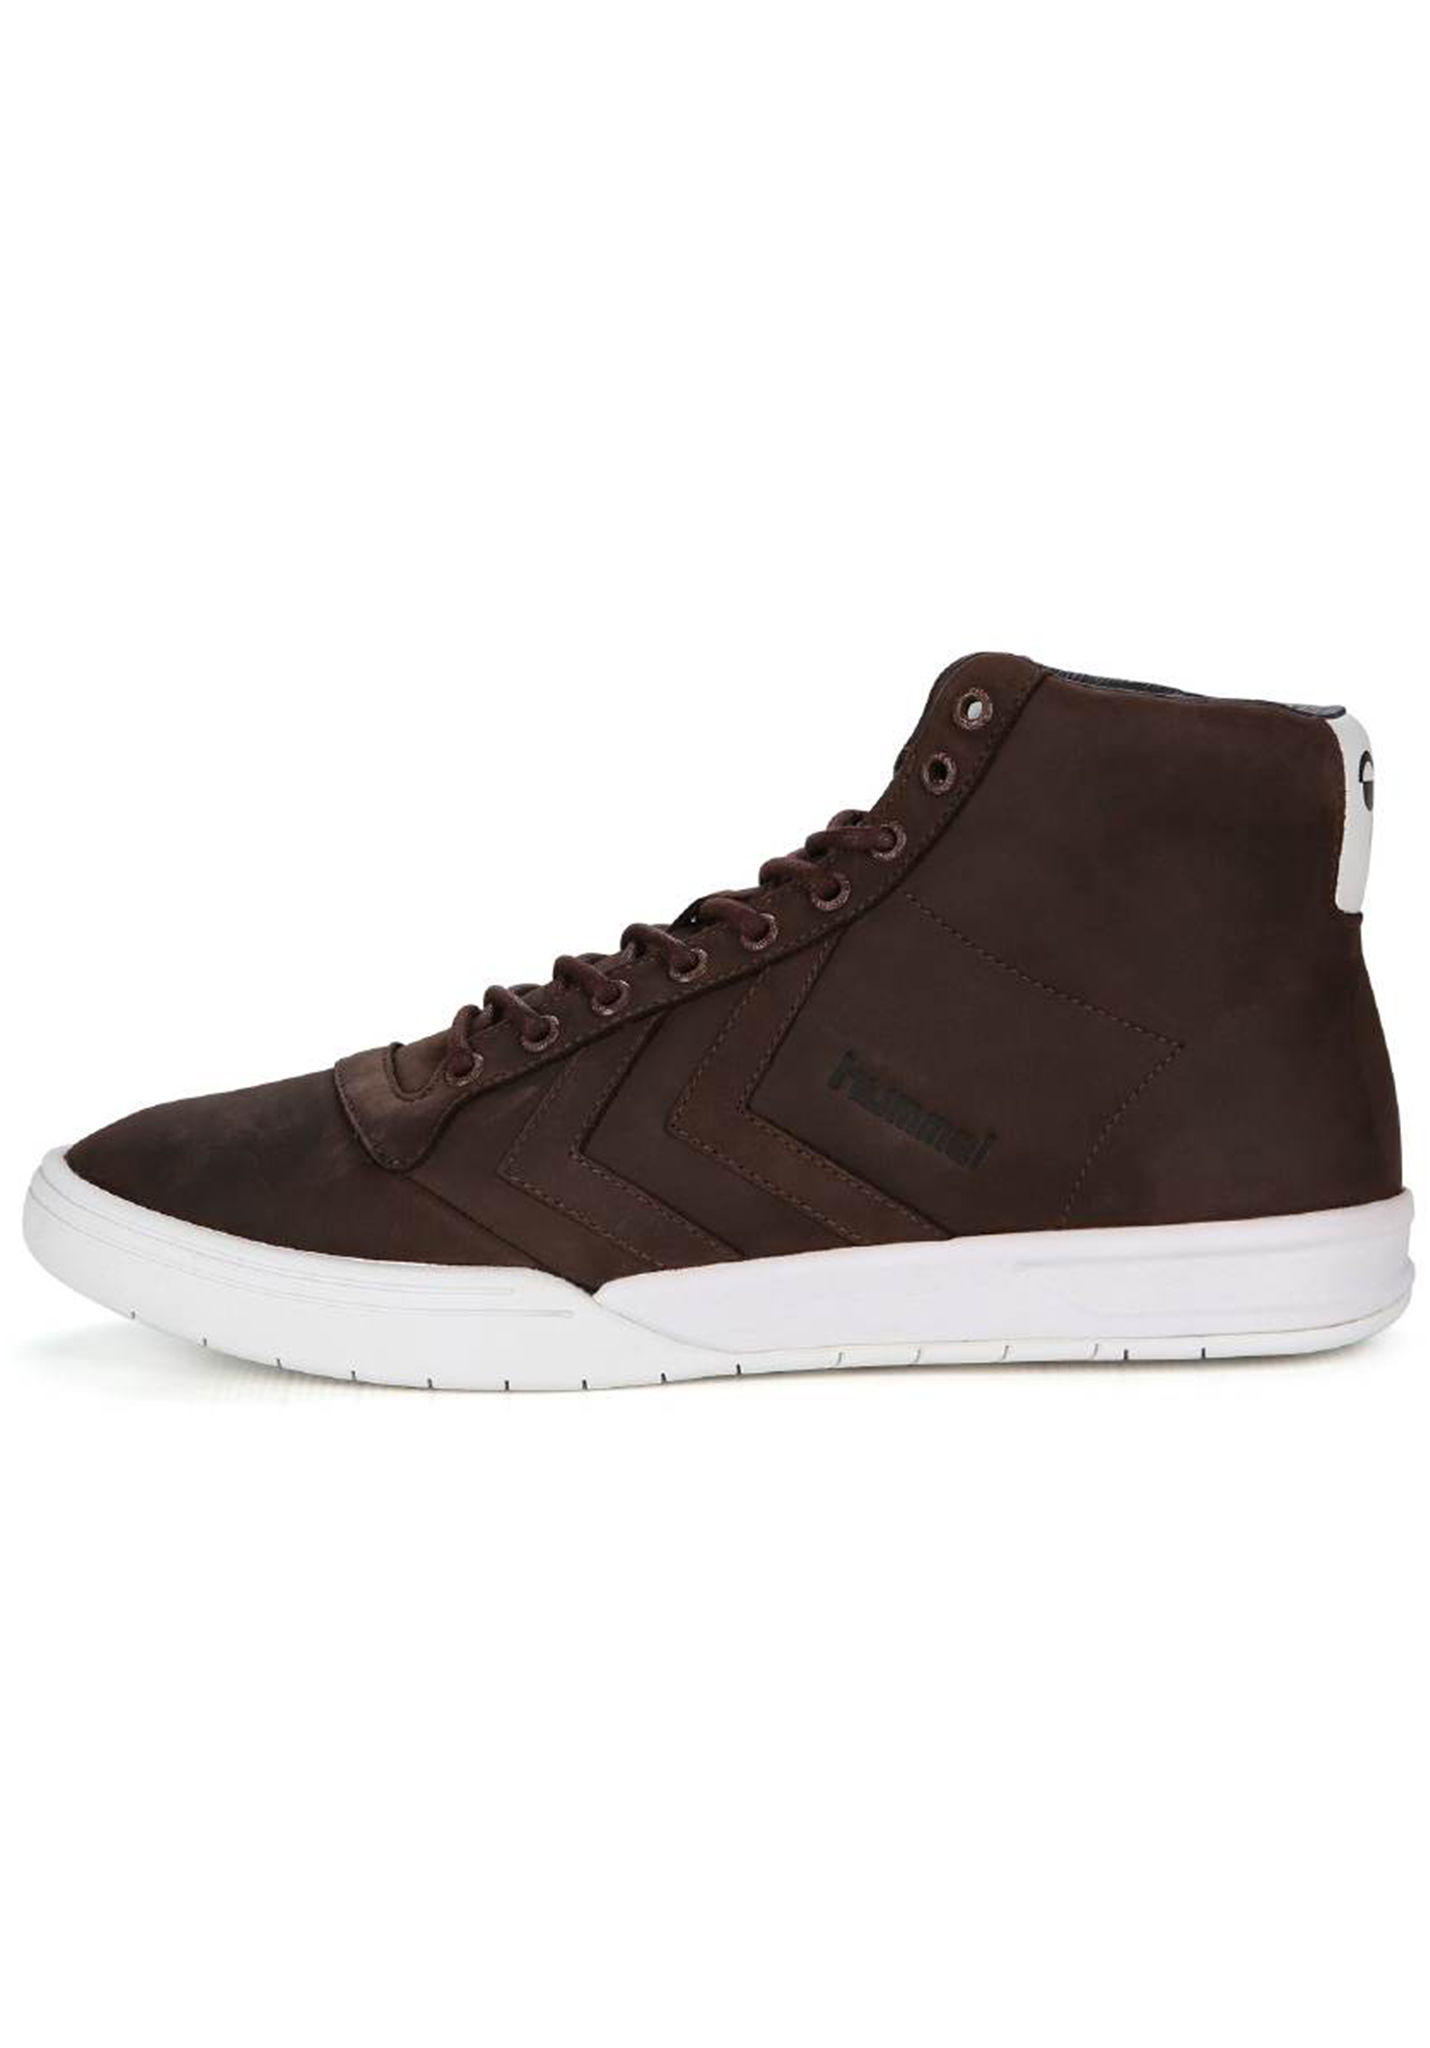 HML STADIL WINTER HIGH SNEAKER - FOOTWEAR - High-tops & sneakers Hummel From China Cheap Online 100% Original Top Quality iK5W2EOM